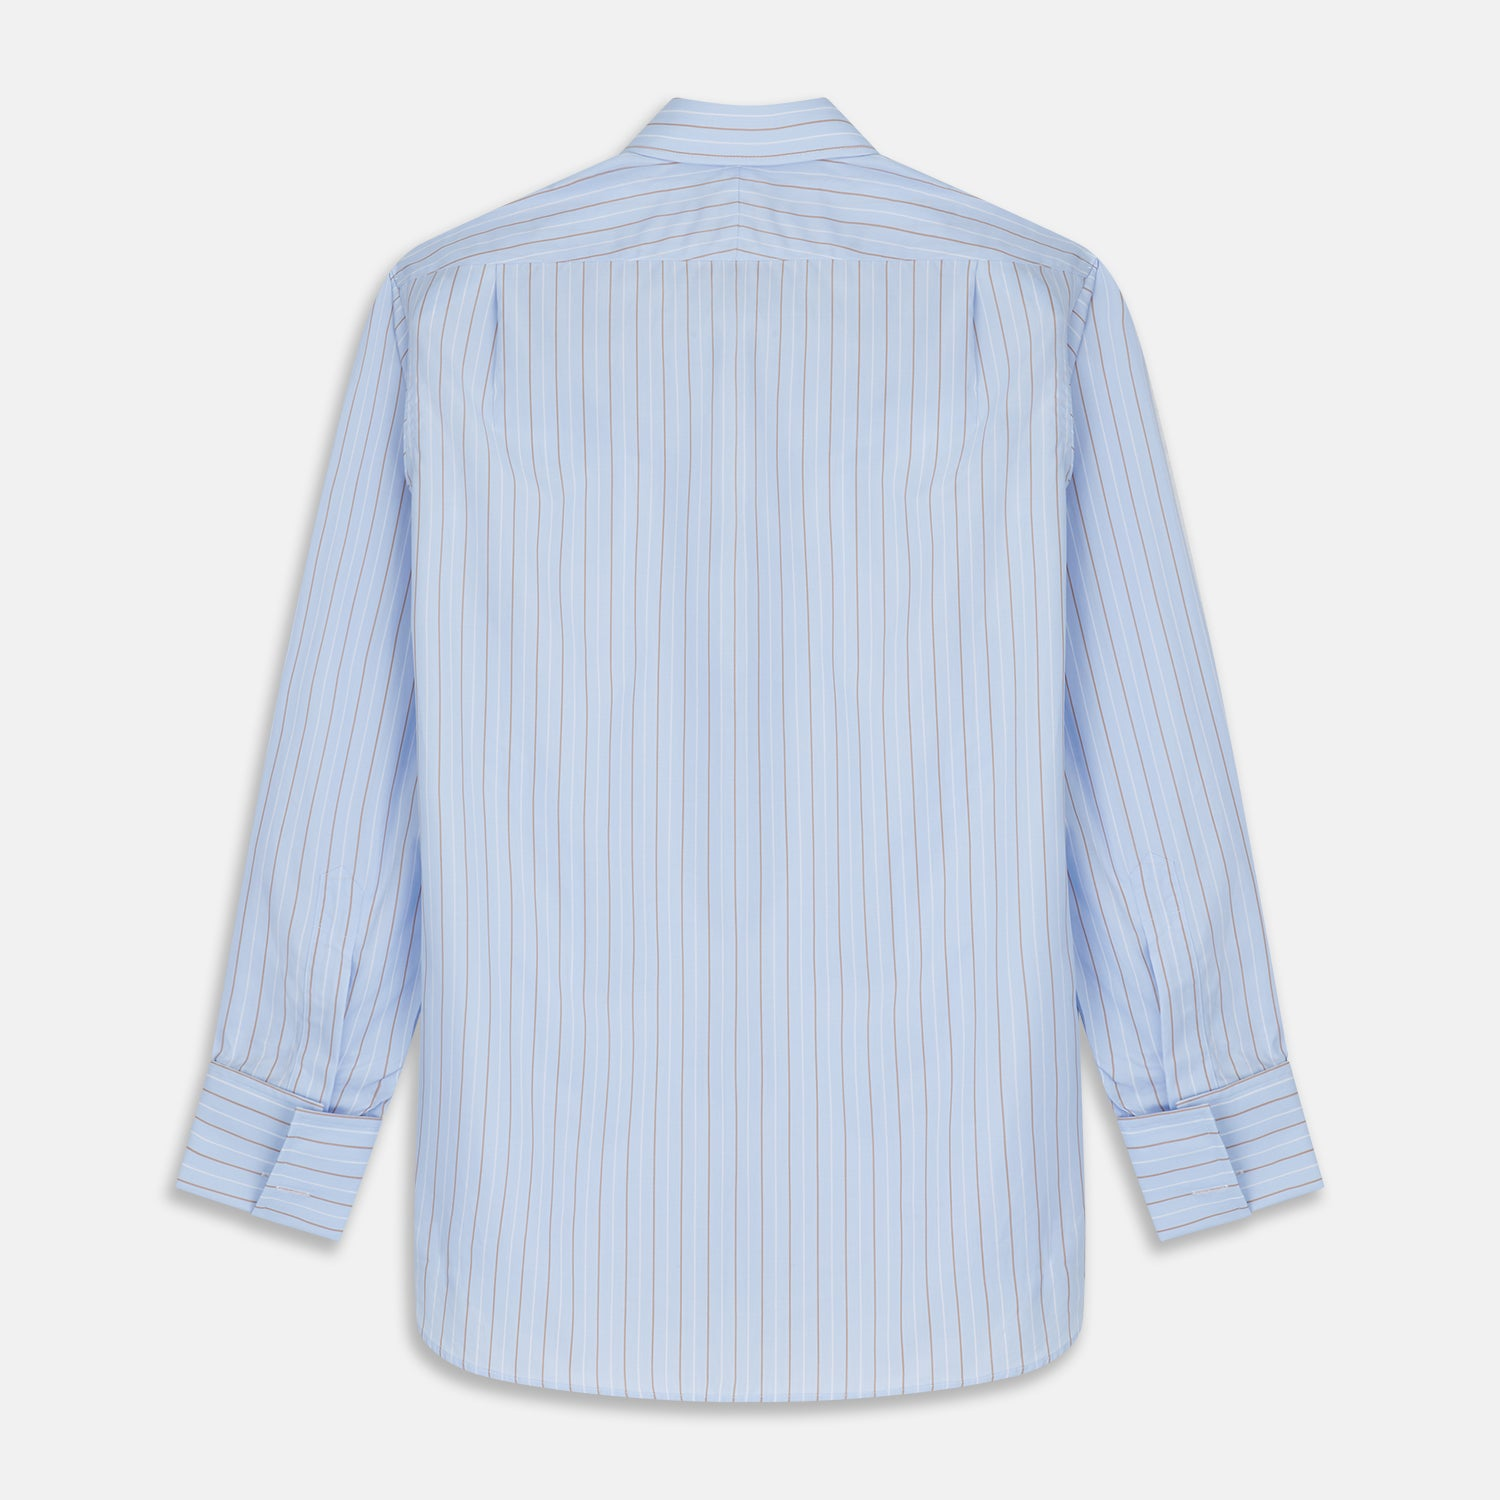 Beige Stripe Regular Fit Shirt with T&A Collar and Double Cuffs